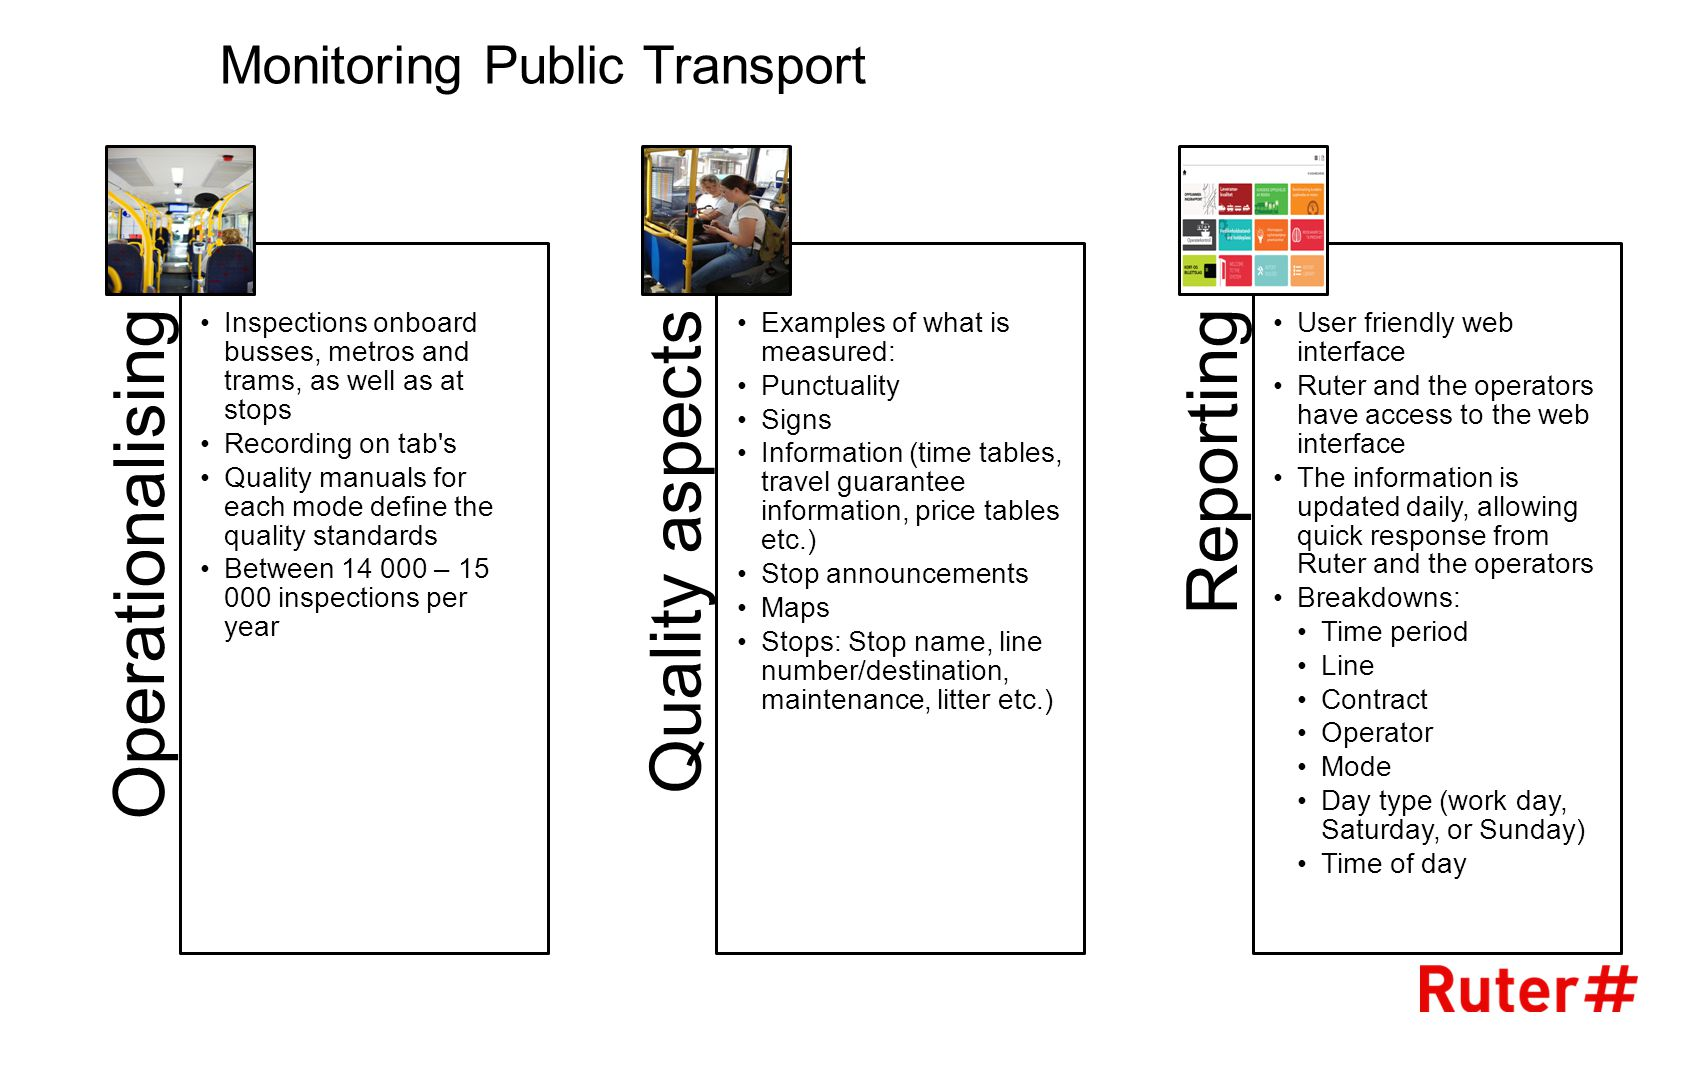 Operationalising Inspections onboard busses, metros and trams, as well as at stops Recording on tab s Quality manuals for each mode define the quality standards Between 14 000 – 15 000 inspections per year Quality aspects Examples of what is measured: Punctuality Signs Information (time tables, travel guarantee information, price tables etc.) Stop announcements Maps Stops: Stop name, line number/destination, maintenance, litter etc.) Reporting User friendly web interface Ruter and the operators have access to the web interface The information is updated daily, allowing quick response from Ruter and the operators Breakdowns: Time period Line Contract Operator Mode Day type (work day, Saturday, or Sunday) Time of day Monitoring Public Transport